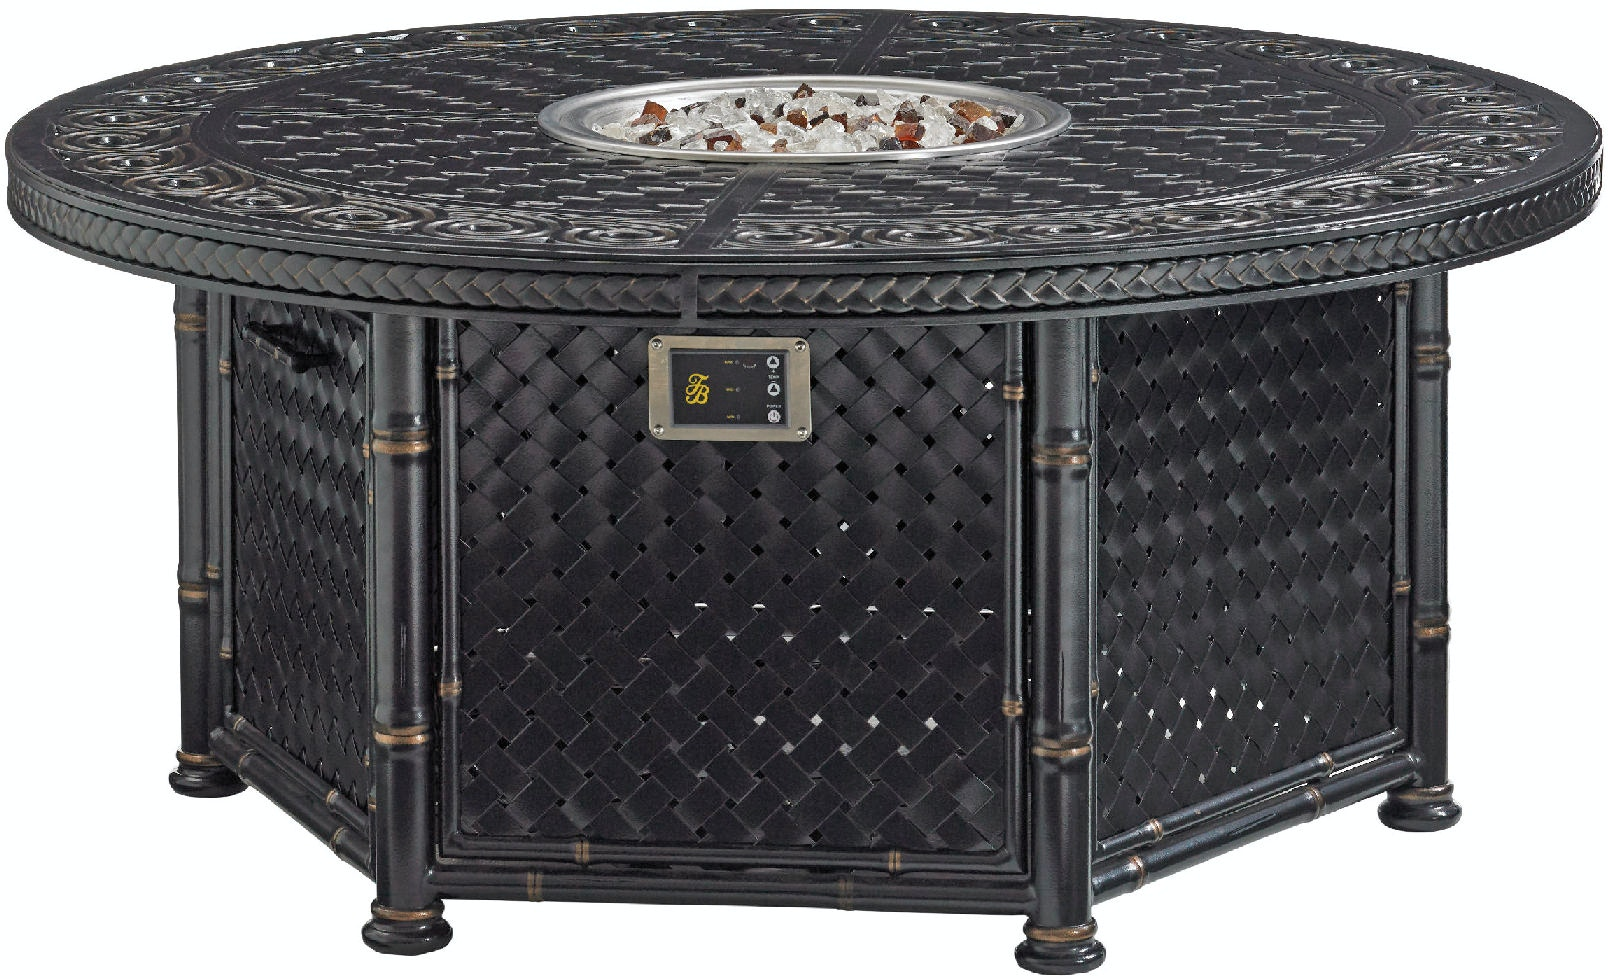 Tommy Bahama Outdoor Living OutdoorPatio Gas Fire Pit  : 3237920fgsilo from www.louisshanksfurniture.com size 1024 x 768 jpeg 92kB